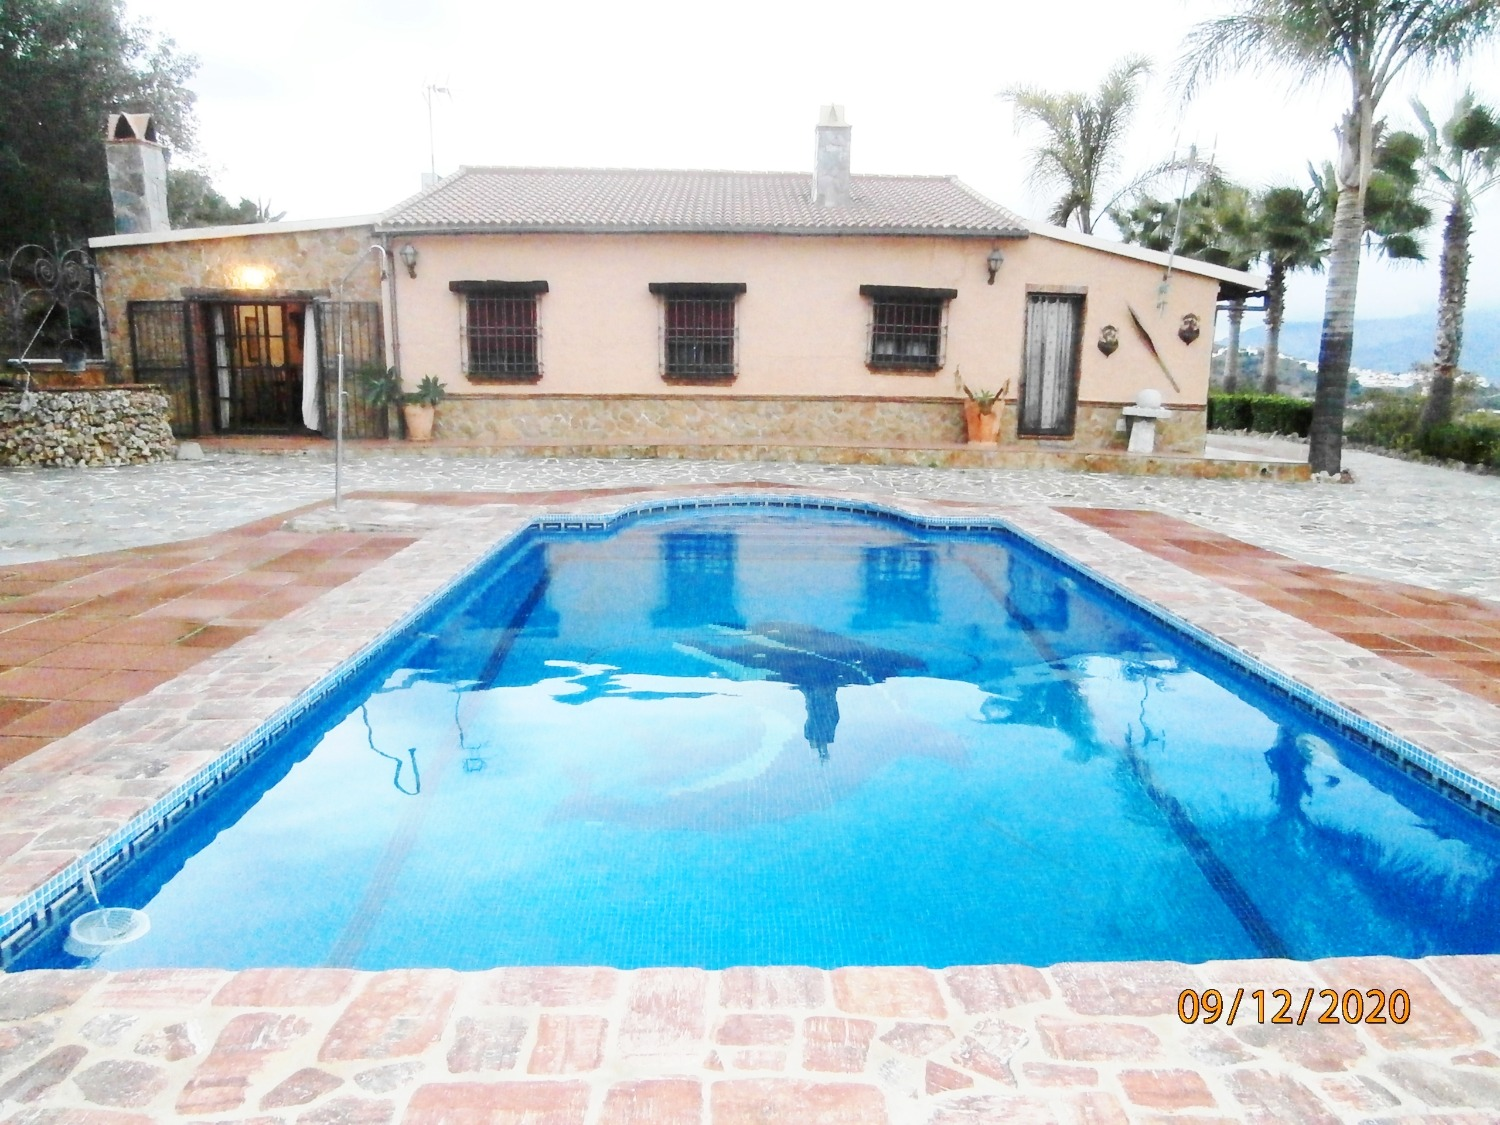 Beautiful cottage with swimming pool, long term rental in Alora, shares common areas.